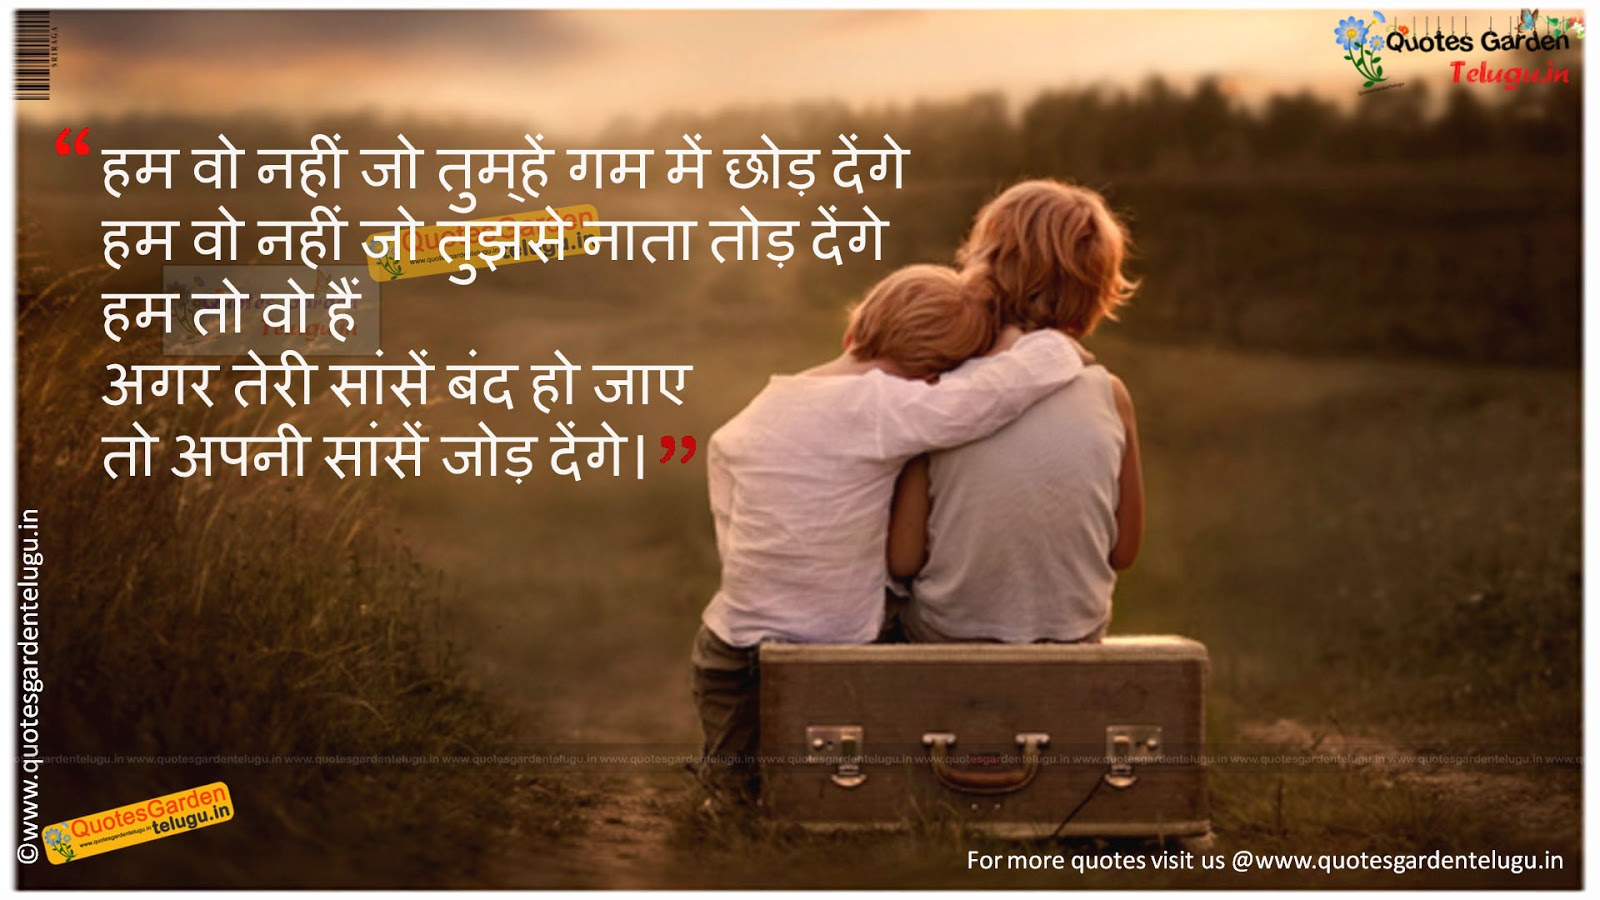 Best Friend Quotes Images In Hd : Best friendship quotes in hindi with hd wallpapers